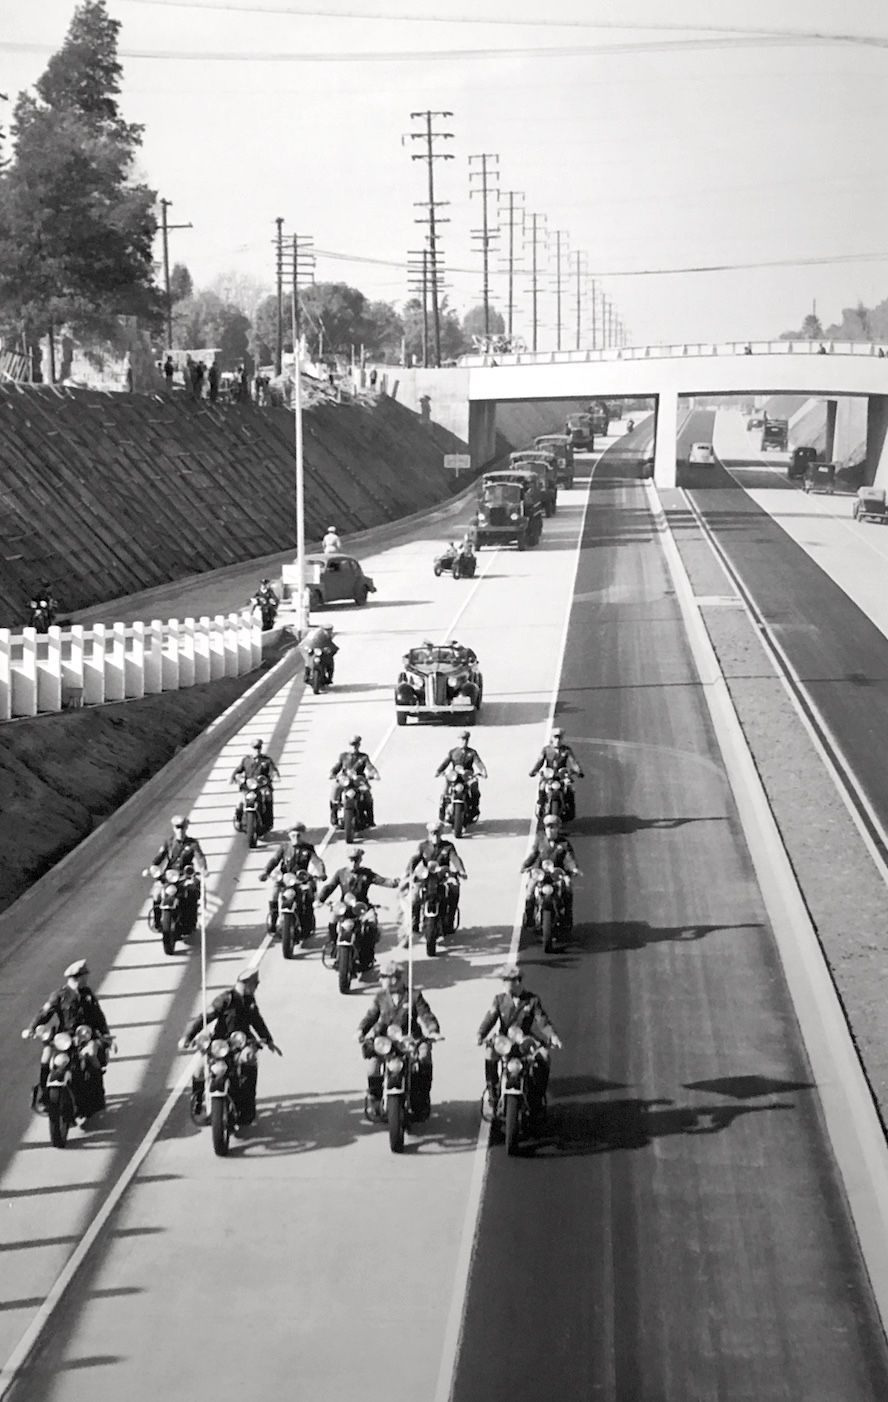 The Opening Of A Segment Of One Of America S First Freeways The Arroyo Seco Parkway Los Angeles December 30 1940 Los Angeles History Los Angeles California History